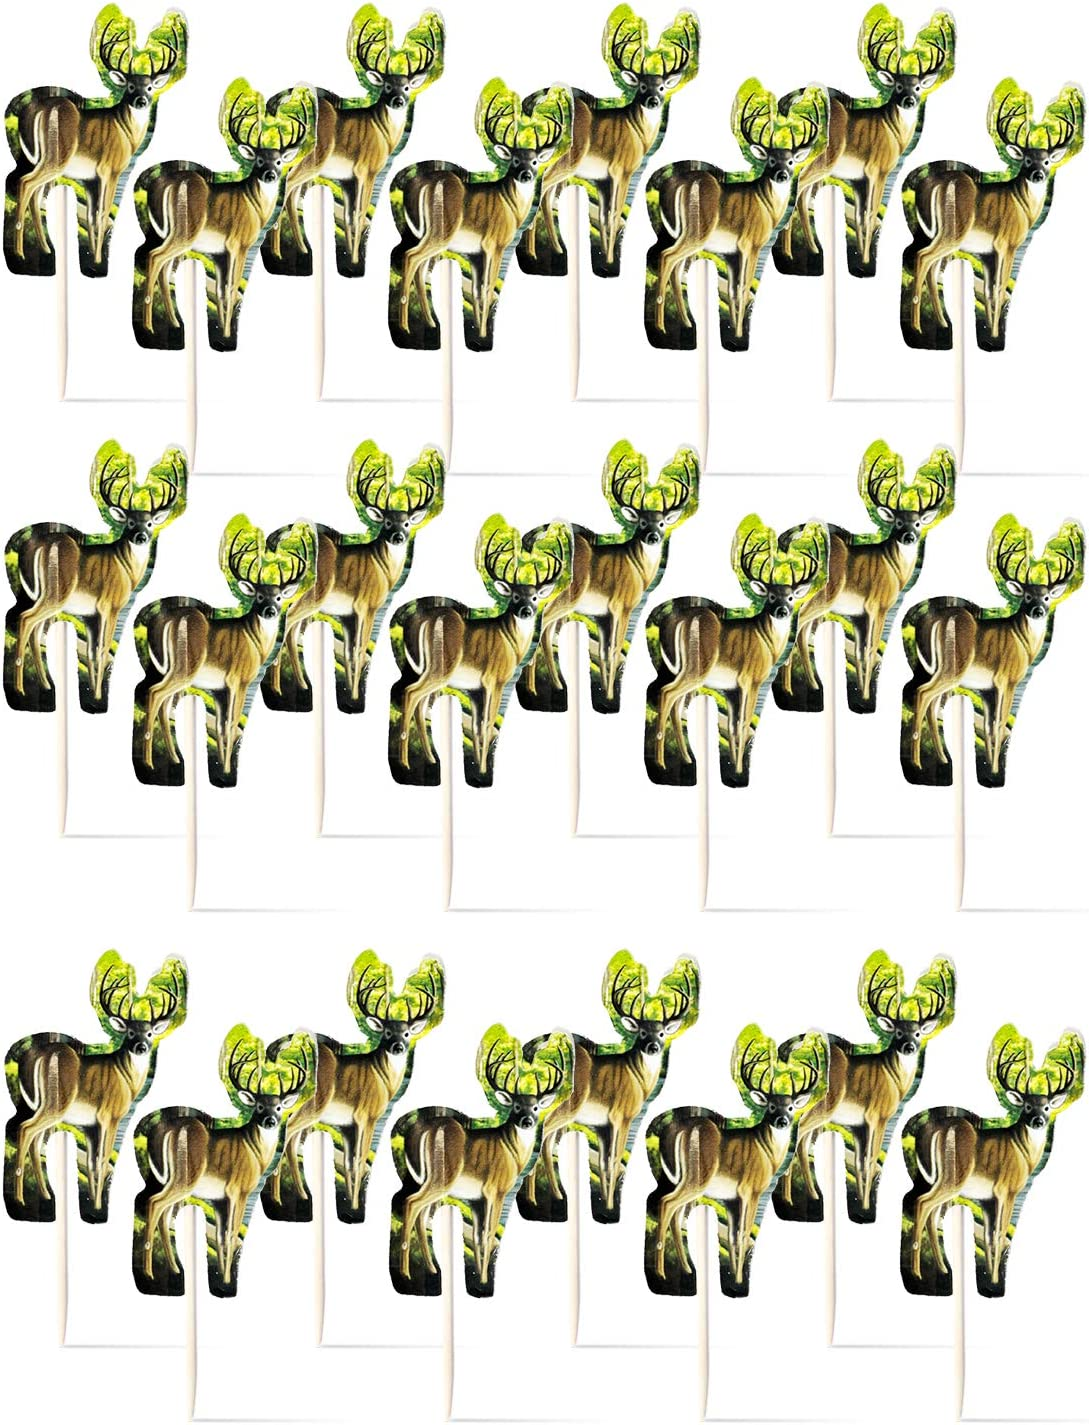 Havercamp Next Camo Party Buck Picks   24 Count   Great for Hunter Themed Party, Camouflage Motif, Birthday Event, Graduation Party, Father's Day Celebration